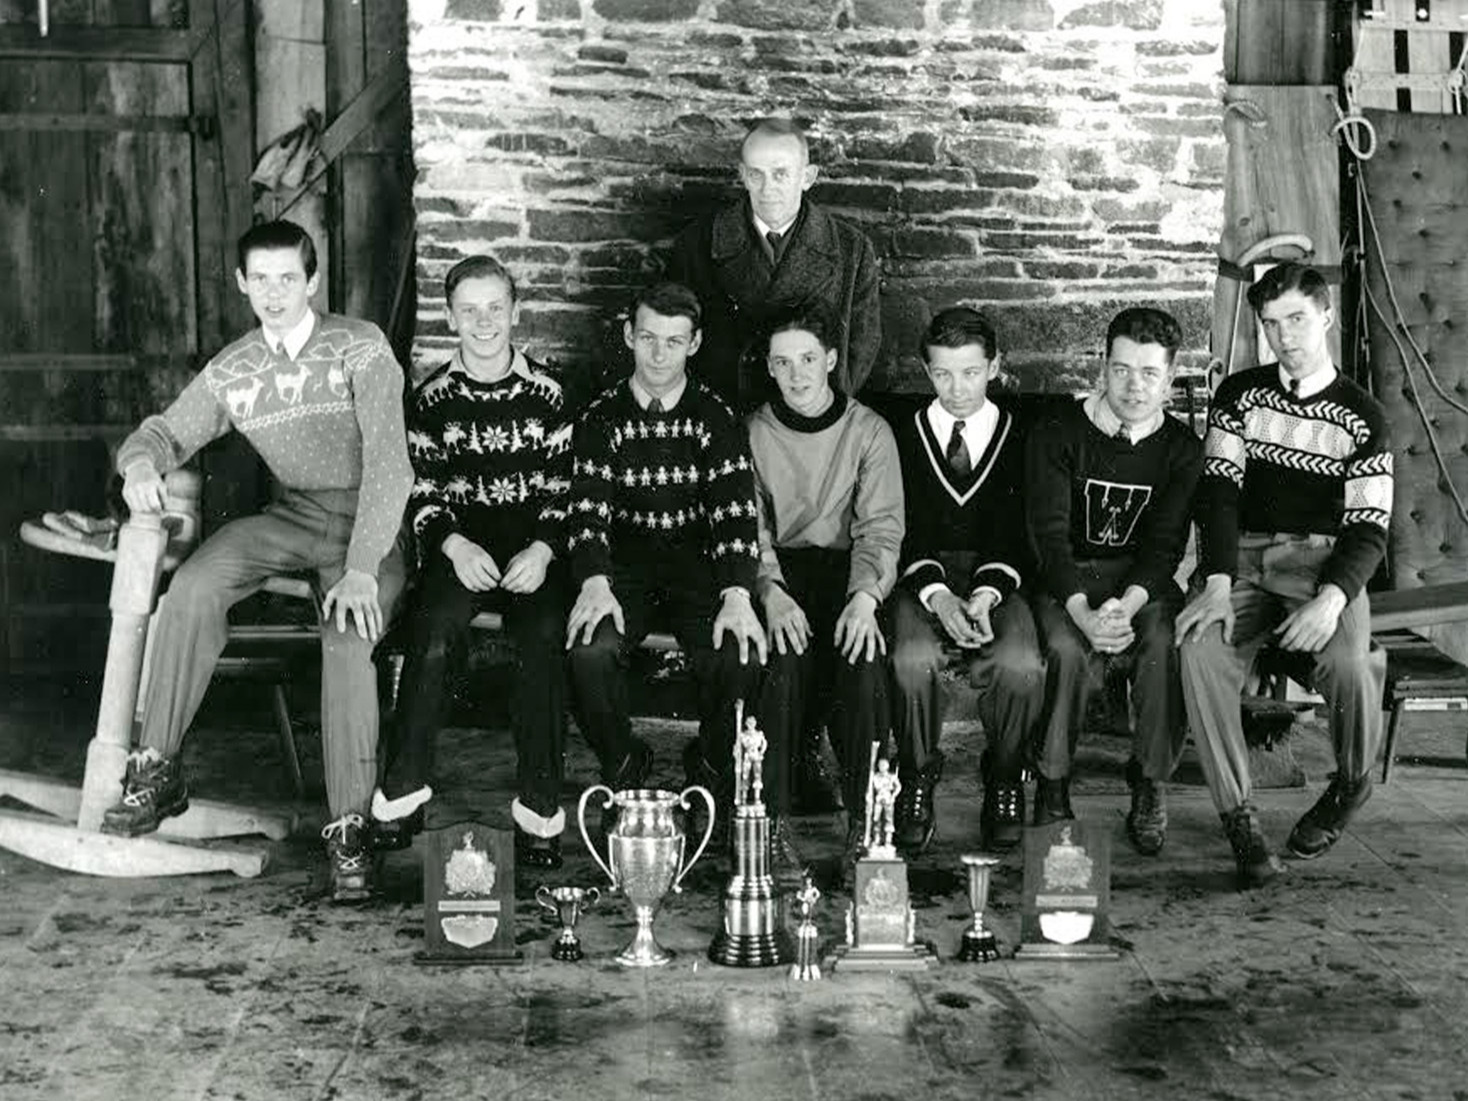 1942 Vermont Champions, taken in Gully Lodge. Back row: Coach Richard Marble Front row, left to right: Toni McManama, Bud Schoenfeld, Harry Ambrose, Harry Putney, Larry Ambrose, Vernon Cram, Bob Green.